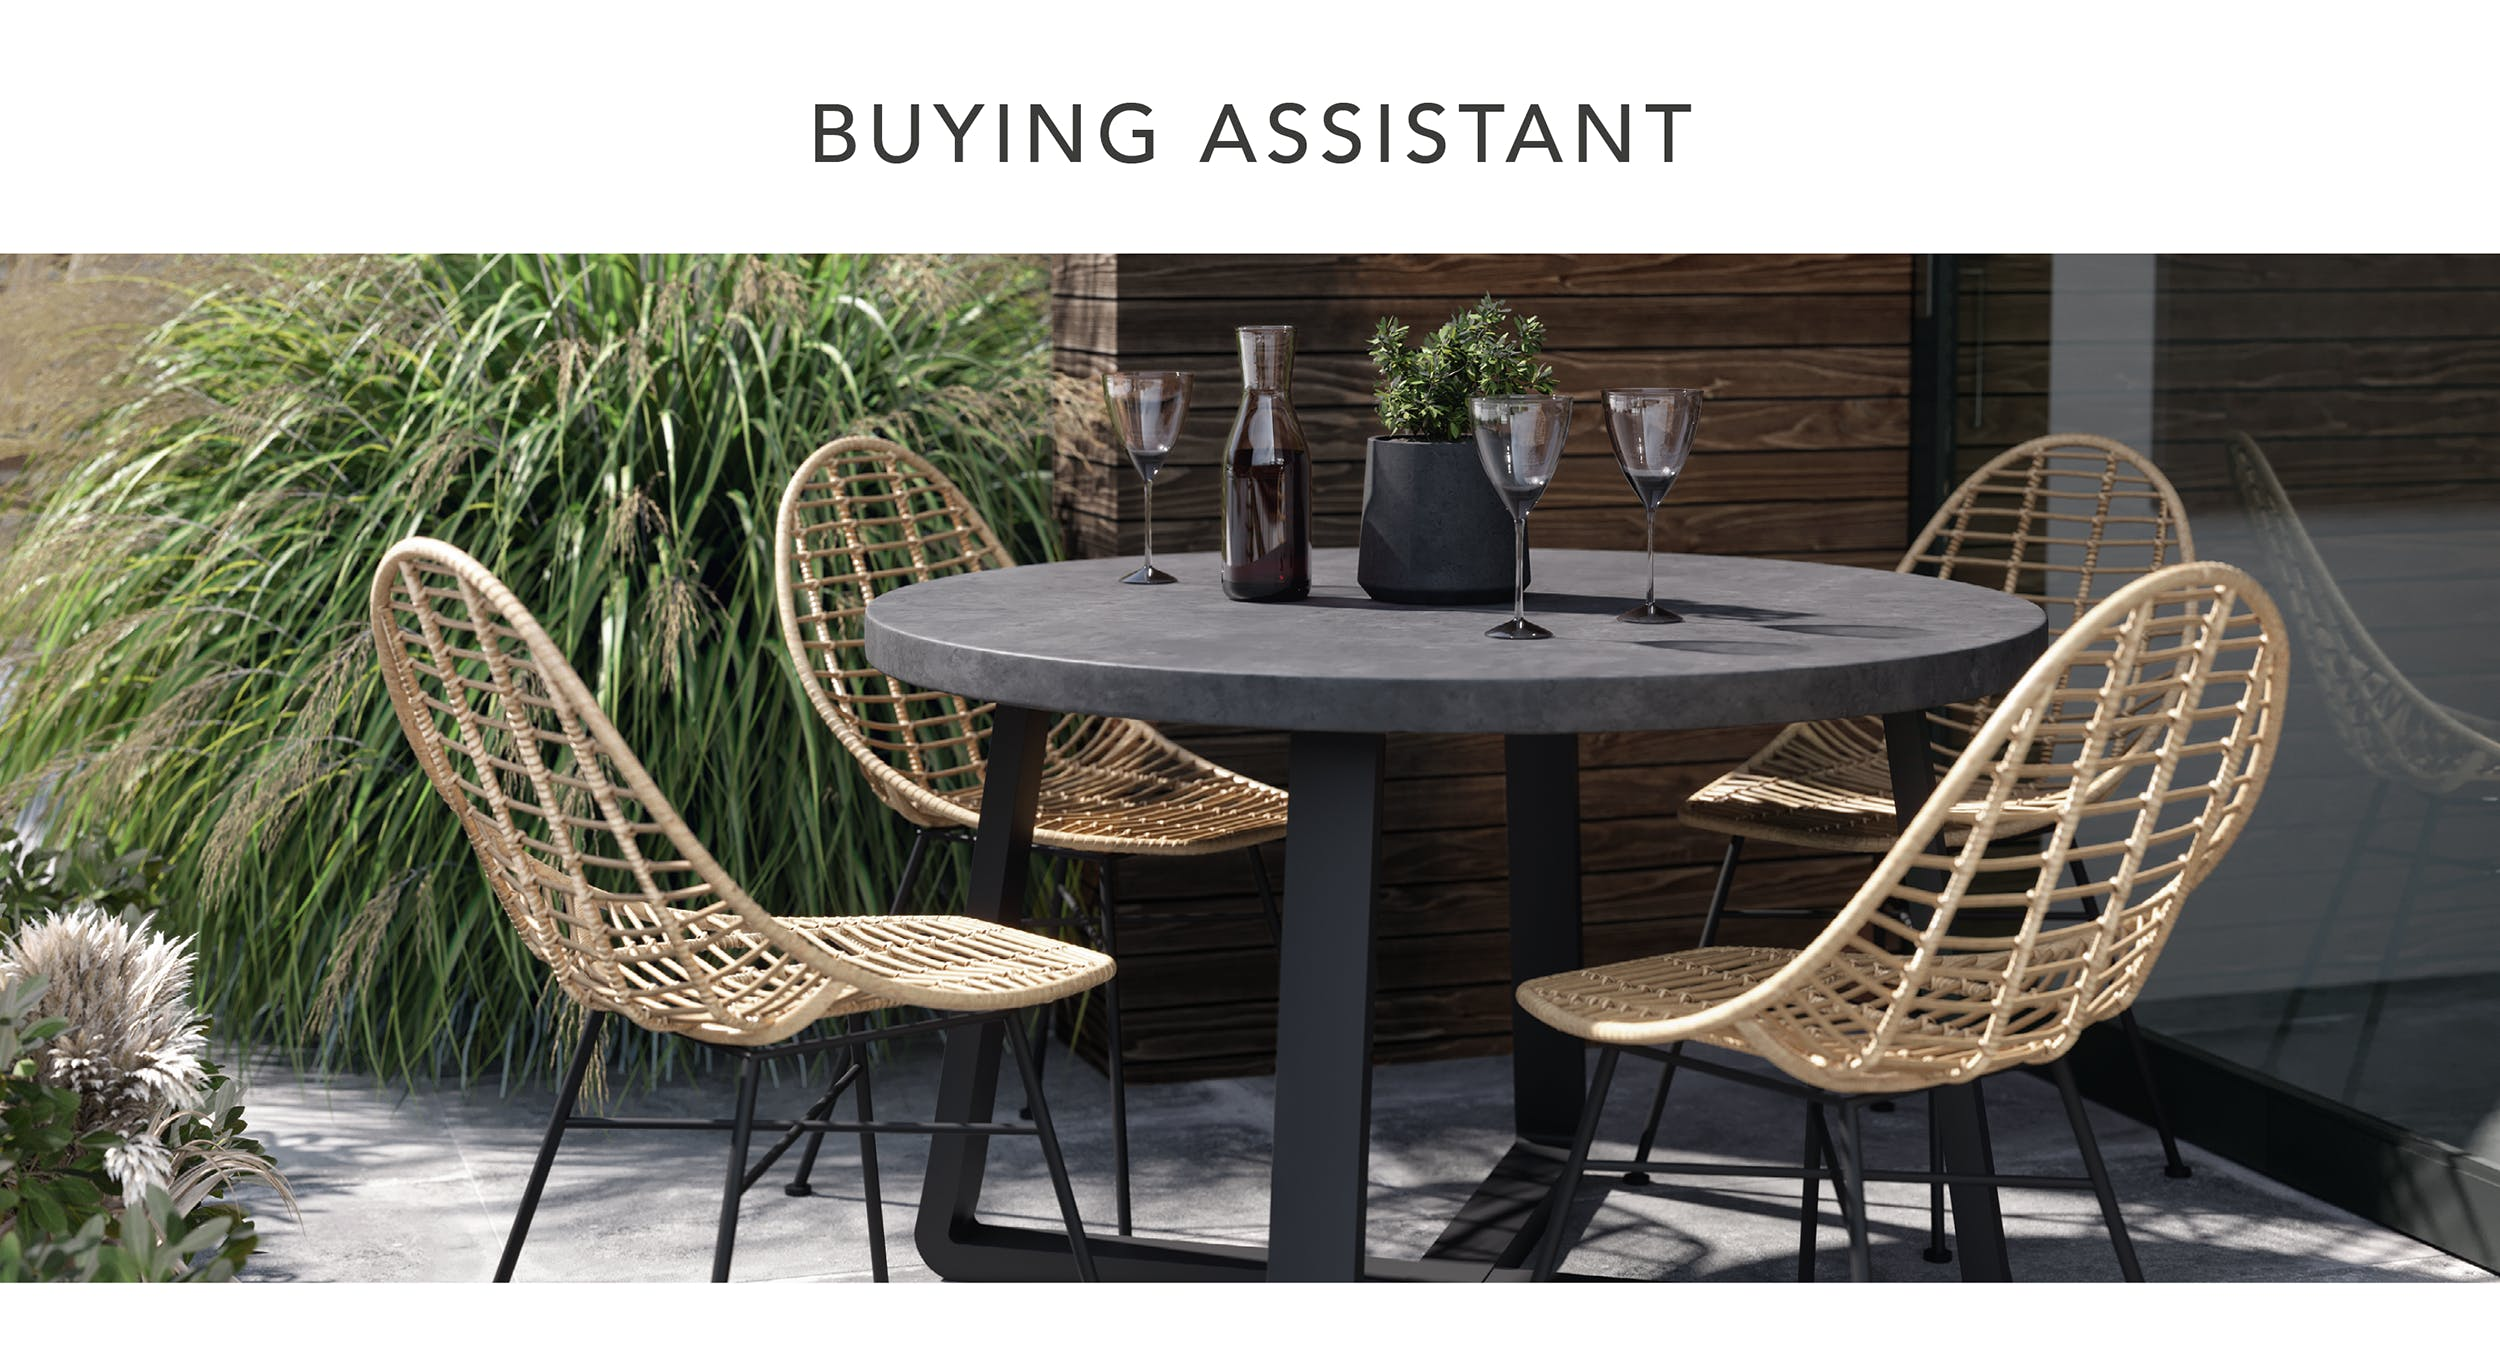 Buying Assistant